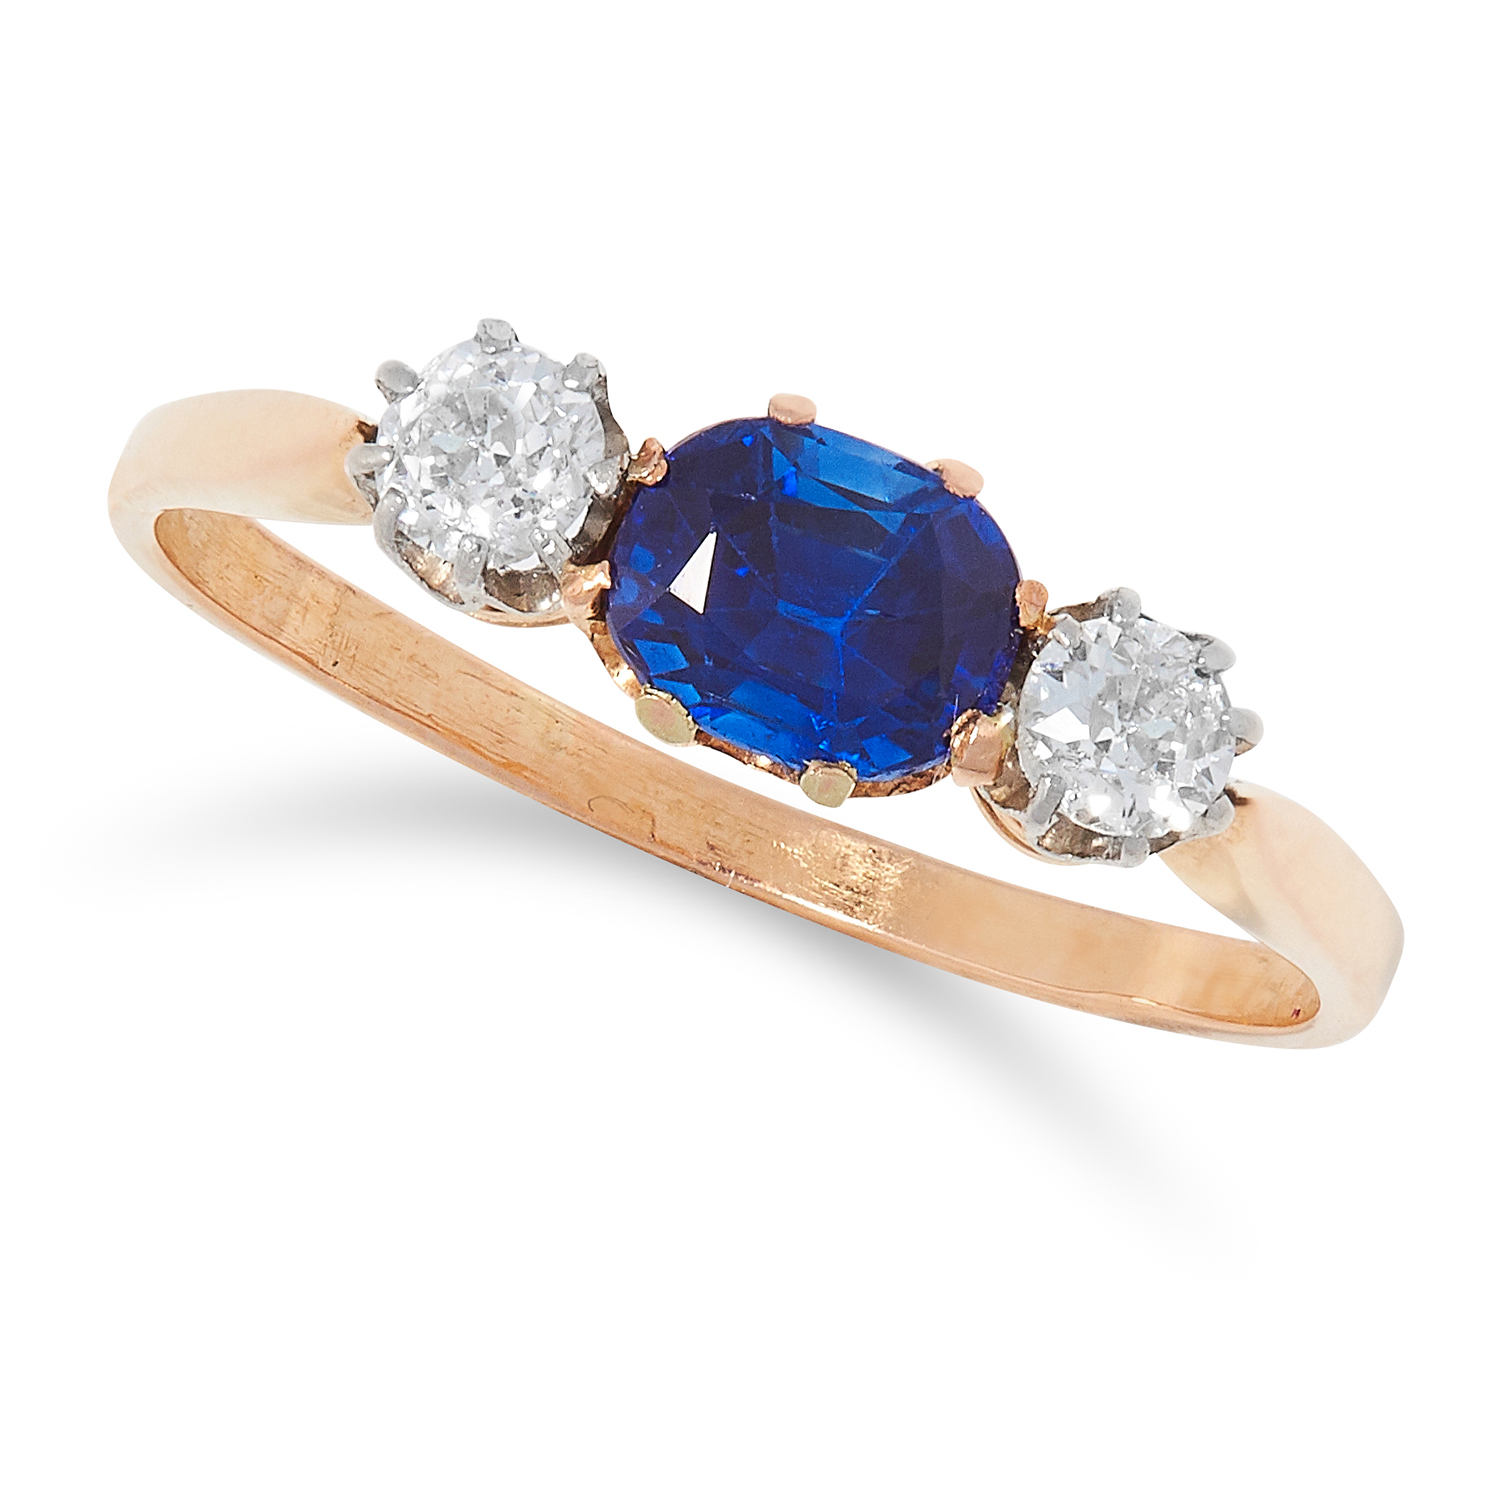 SAPPHIRE AND DIAMOND THREE STONE RING set with a cushion cut sapphire of approximately 0.82 carats